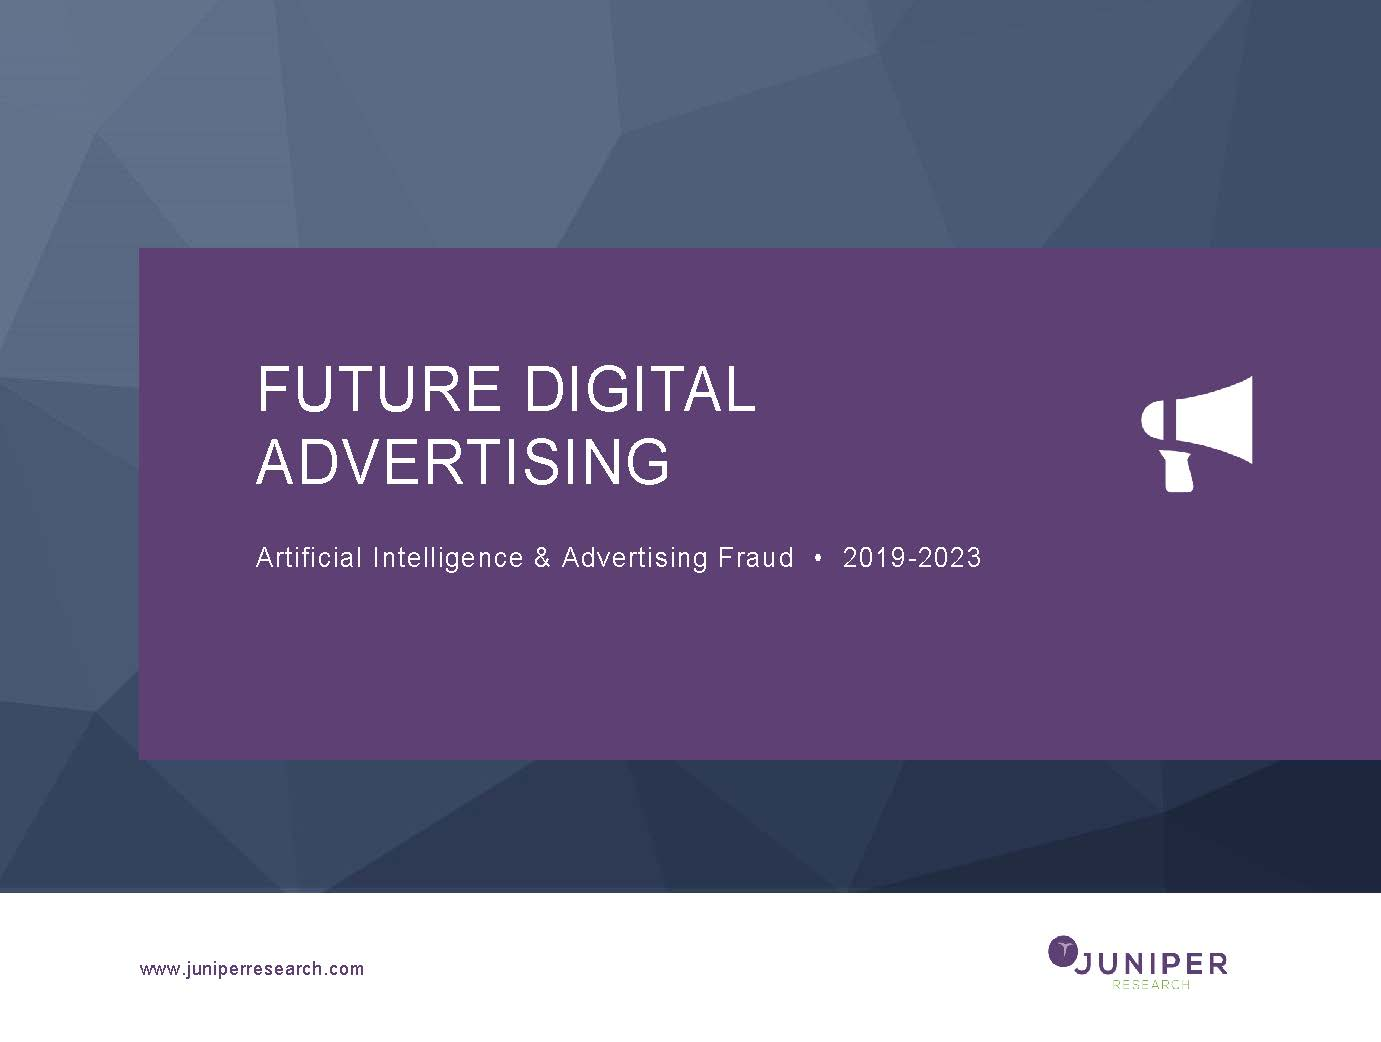 Future Digital Advertising: Artificial Intelligence & Advertising Fraud 2019-2023